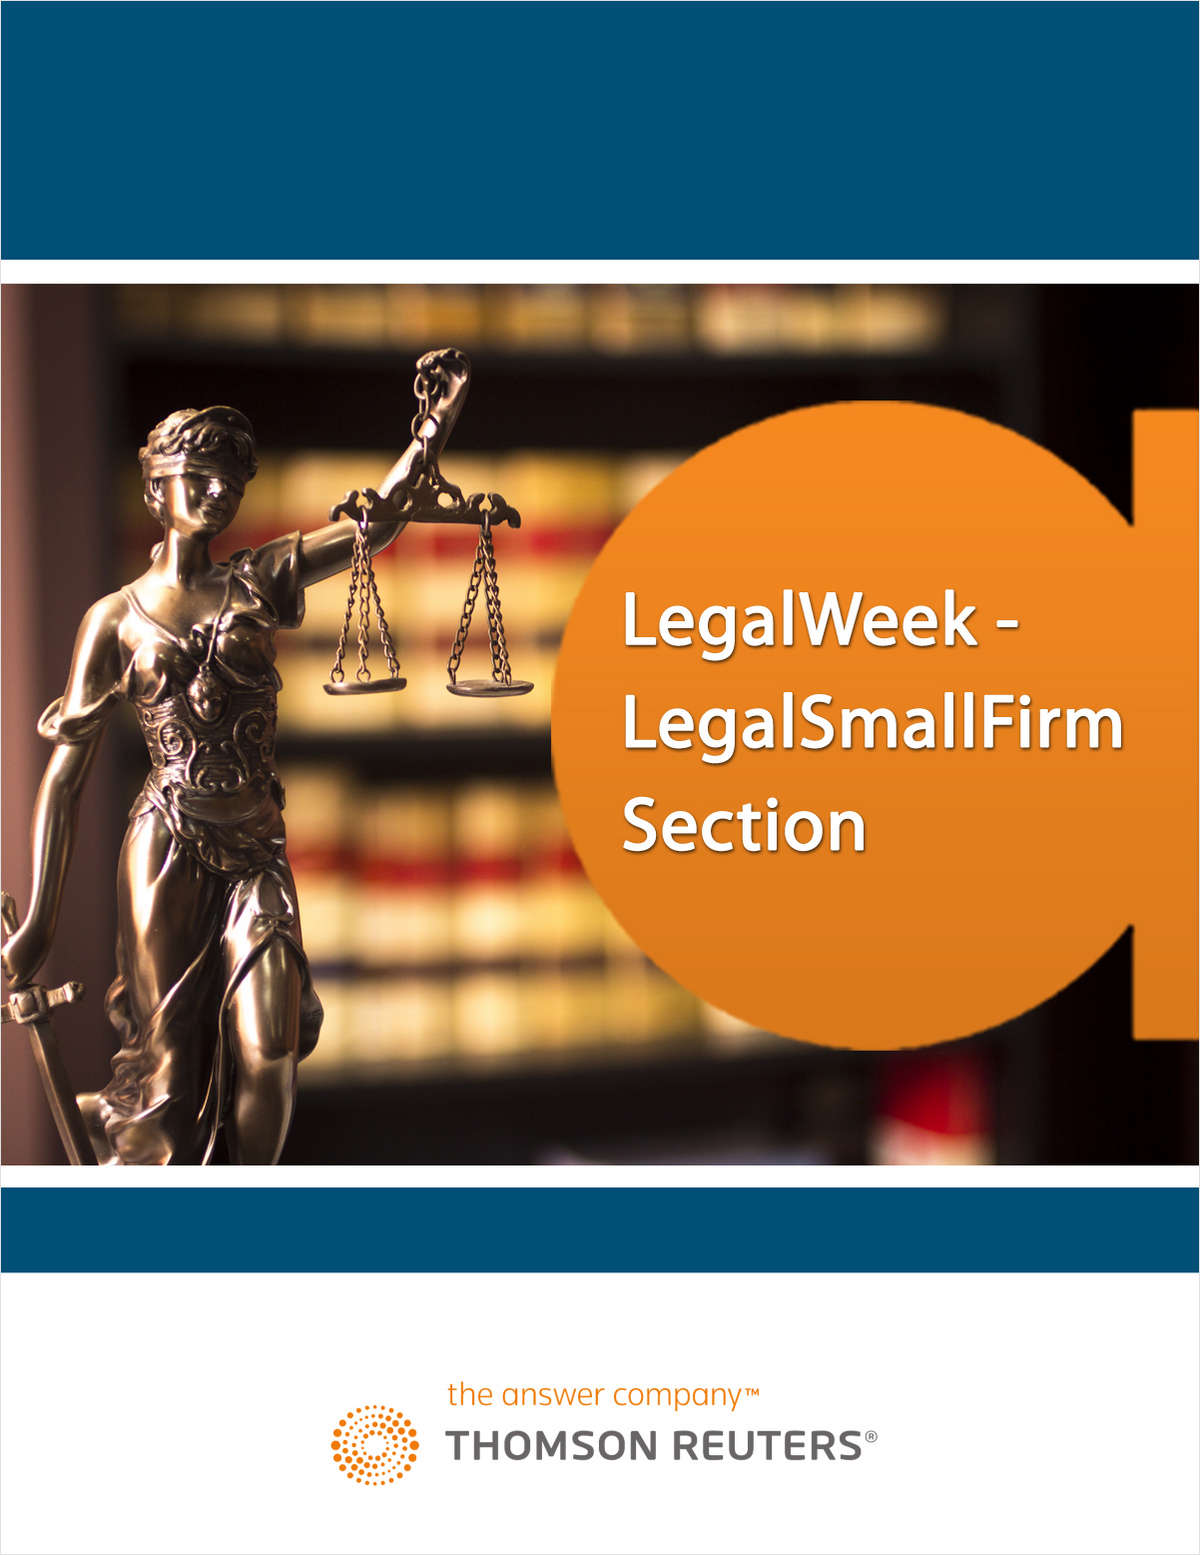 LegalWeek -- LegalSmallFirm Section